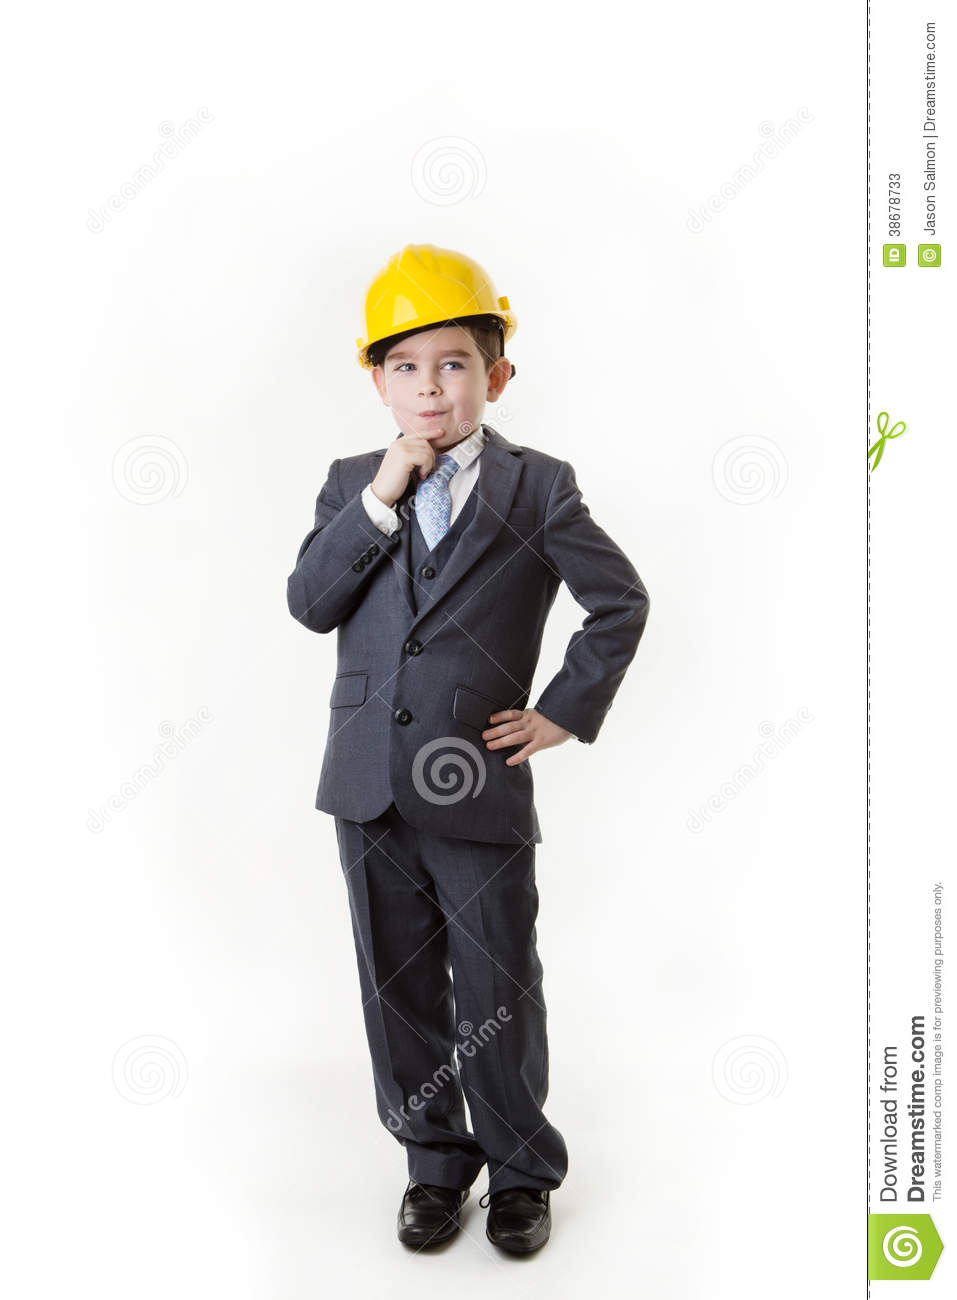 young kid dressed up as a business person stock image image of